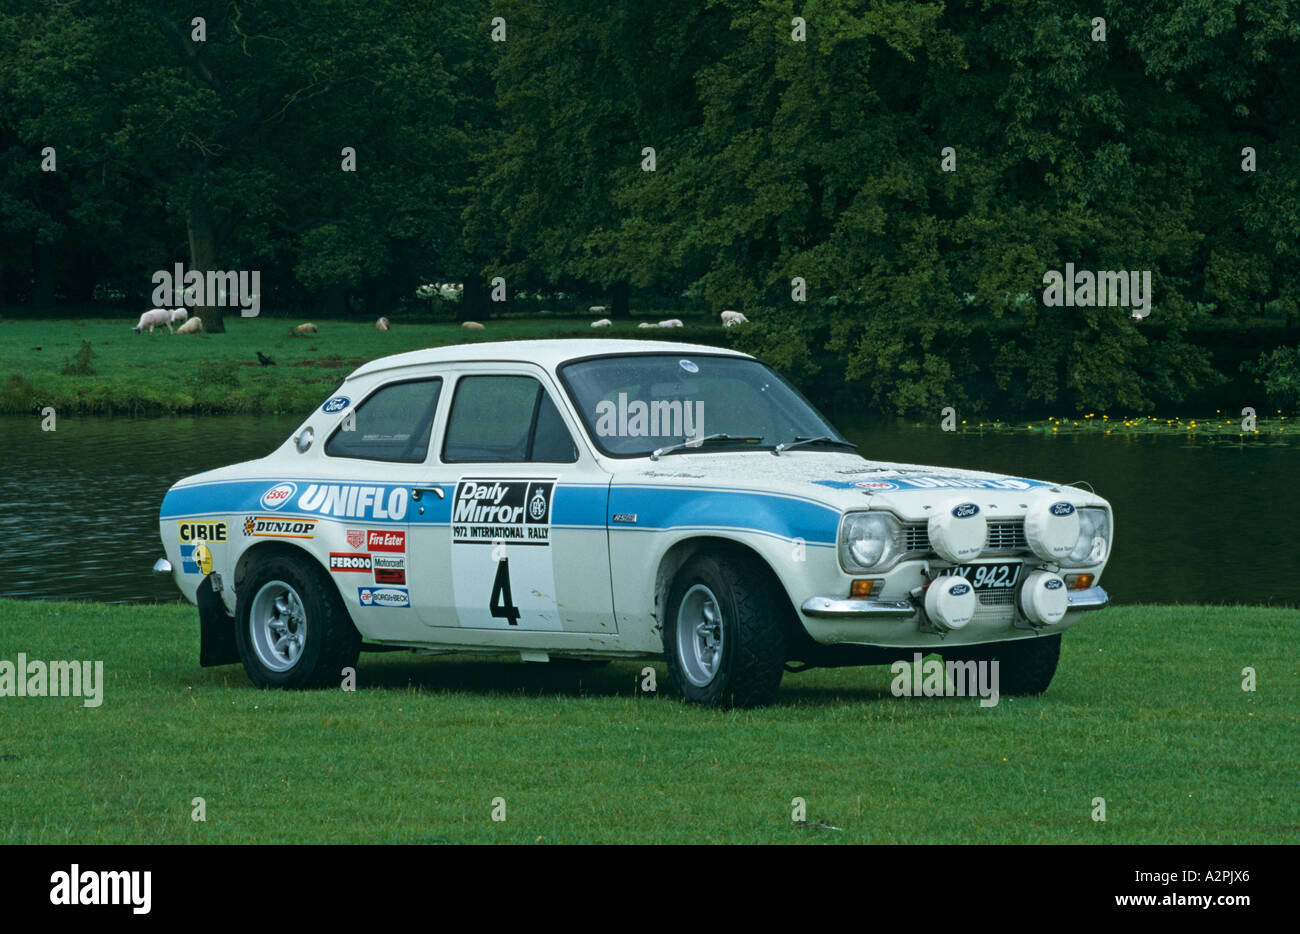 Ford Escort Mk1 Rally Car Stock Photo: 6042661 - Alamy